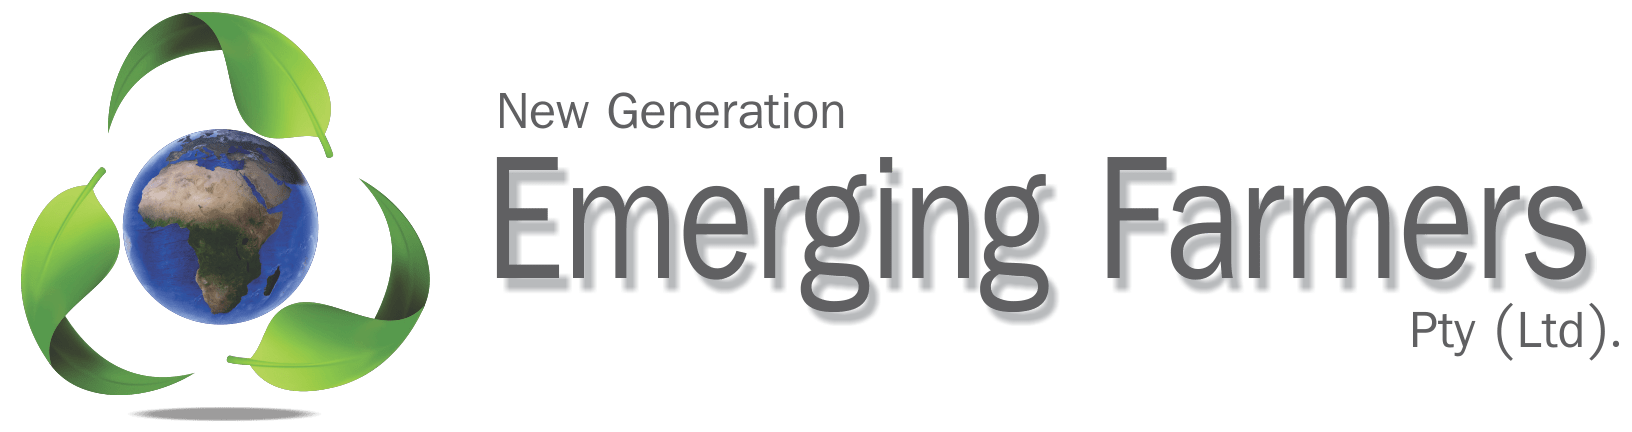 New Generation Emerging Farmers